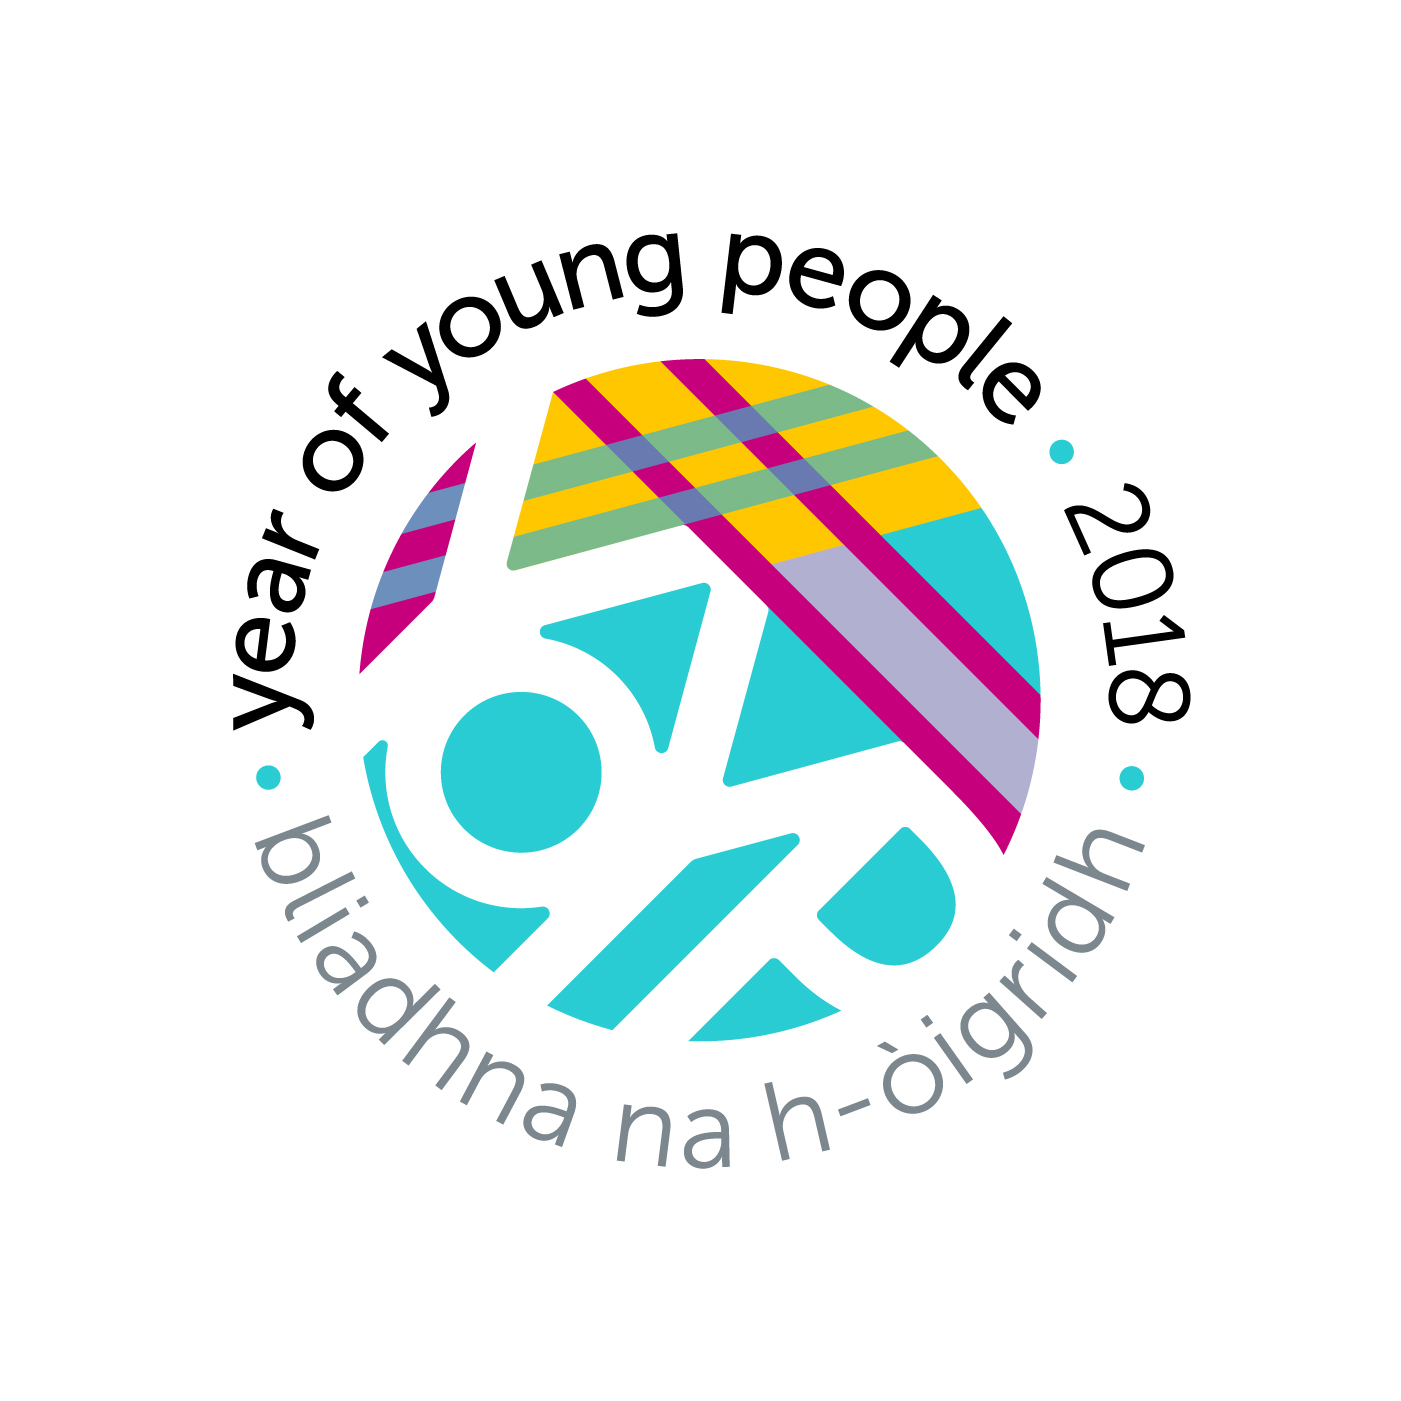 Supporting Scotland's Year of Young People